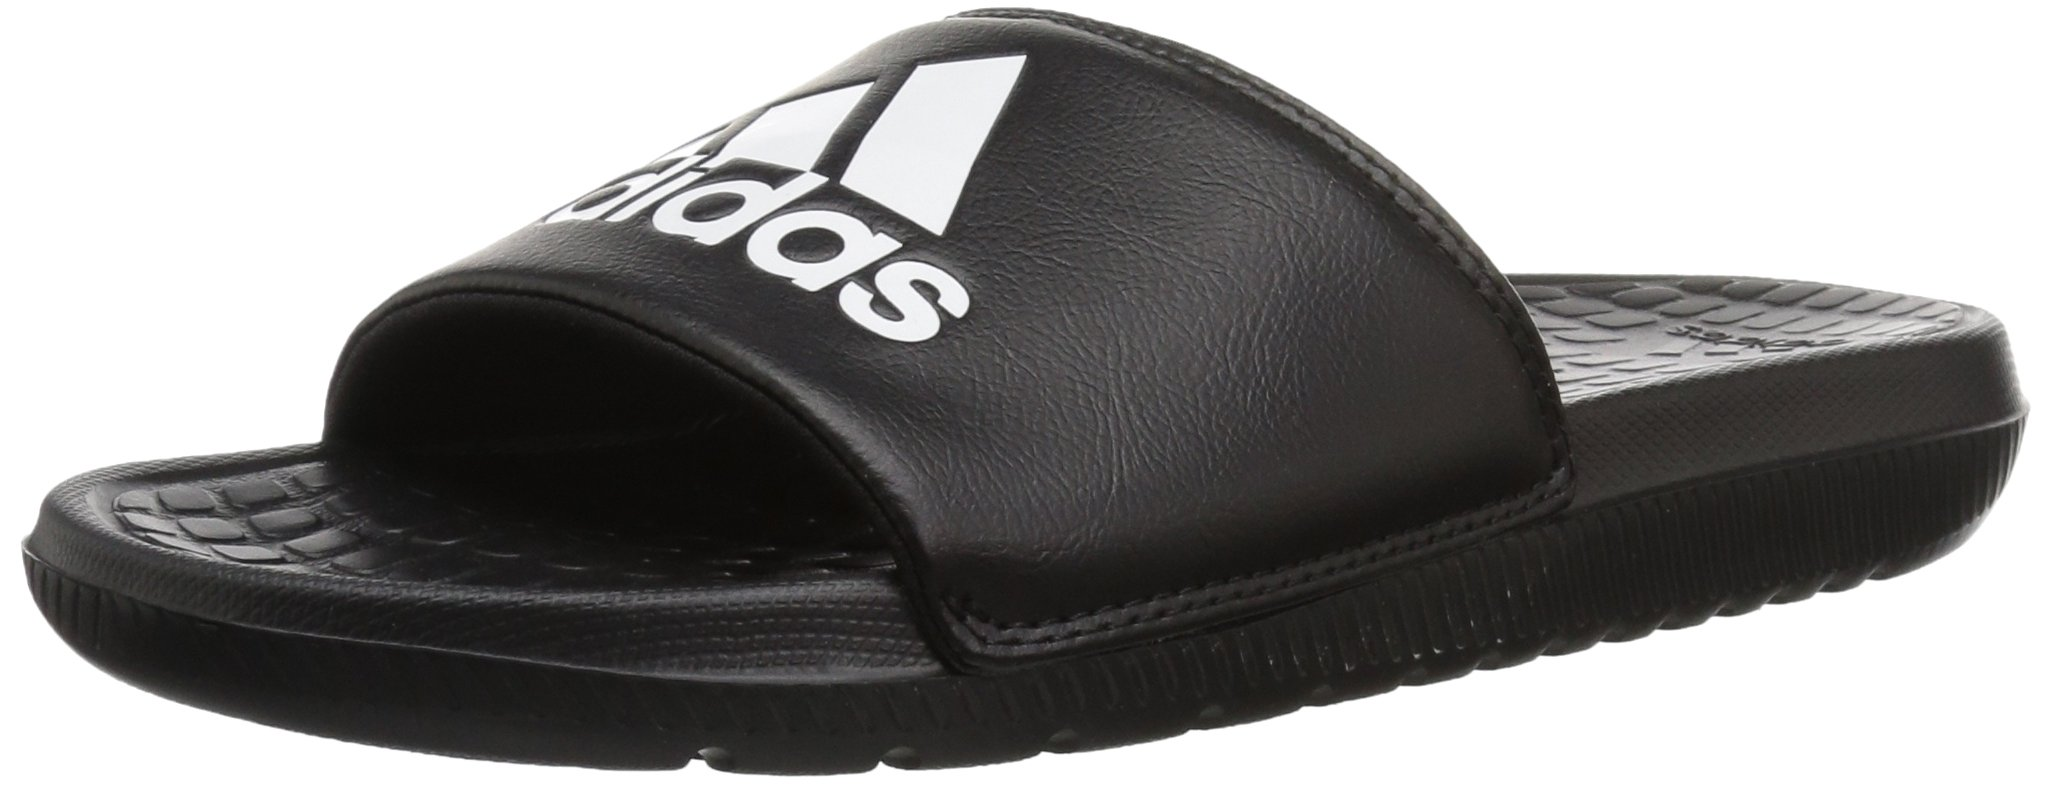 adidas Men's Voloomix Slide Sandal, Black/White/Black, 11 M US by adidas